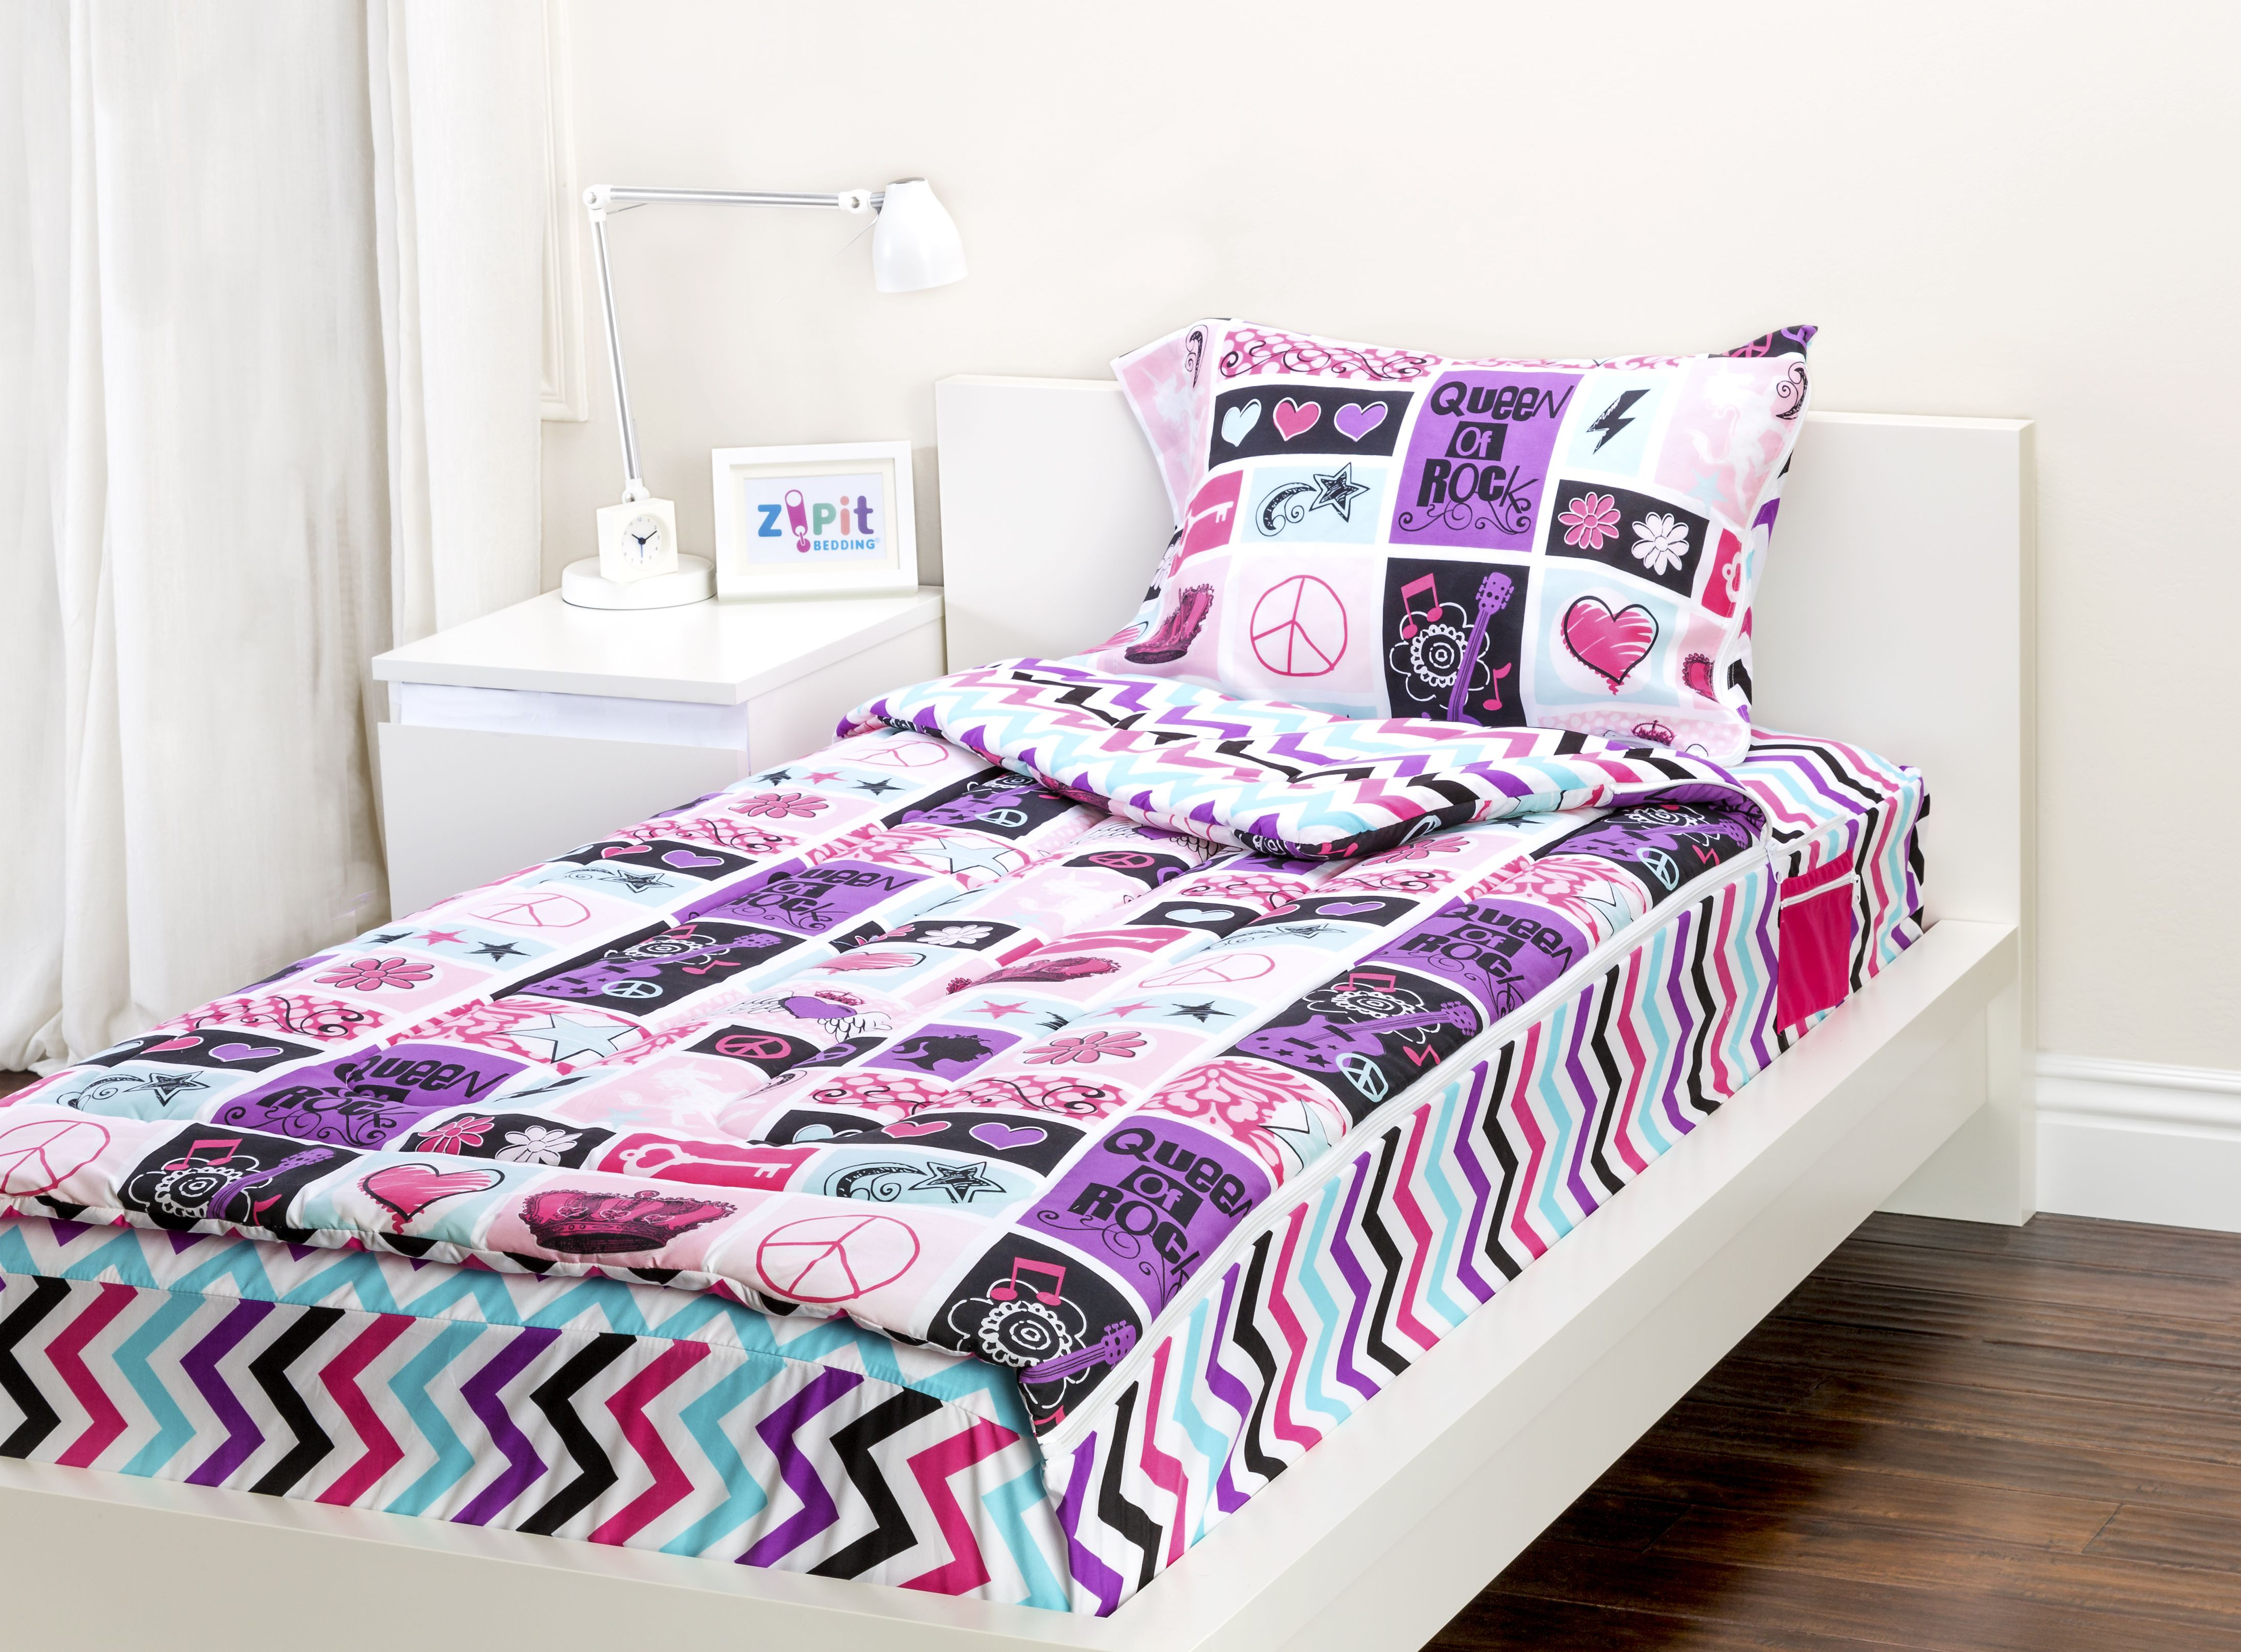 Zipit Bedding Set Zip Up Your Sheets and. Zipit Bedding Set   Zip Up Your Sheets and Comforter Like a